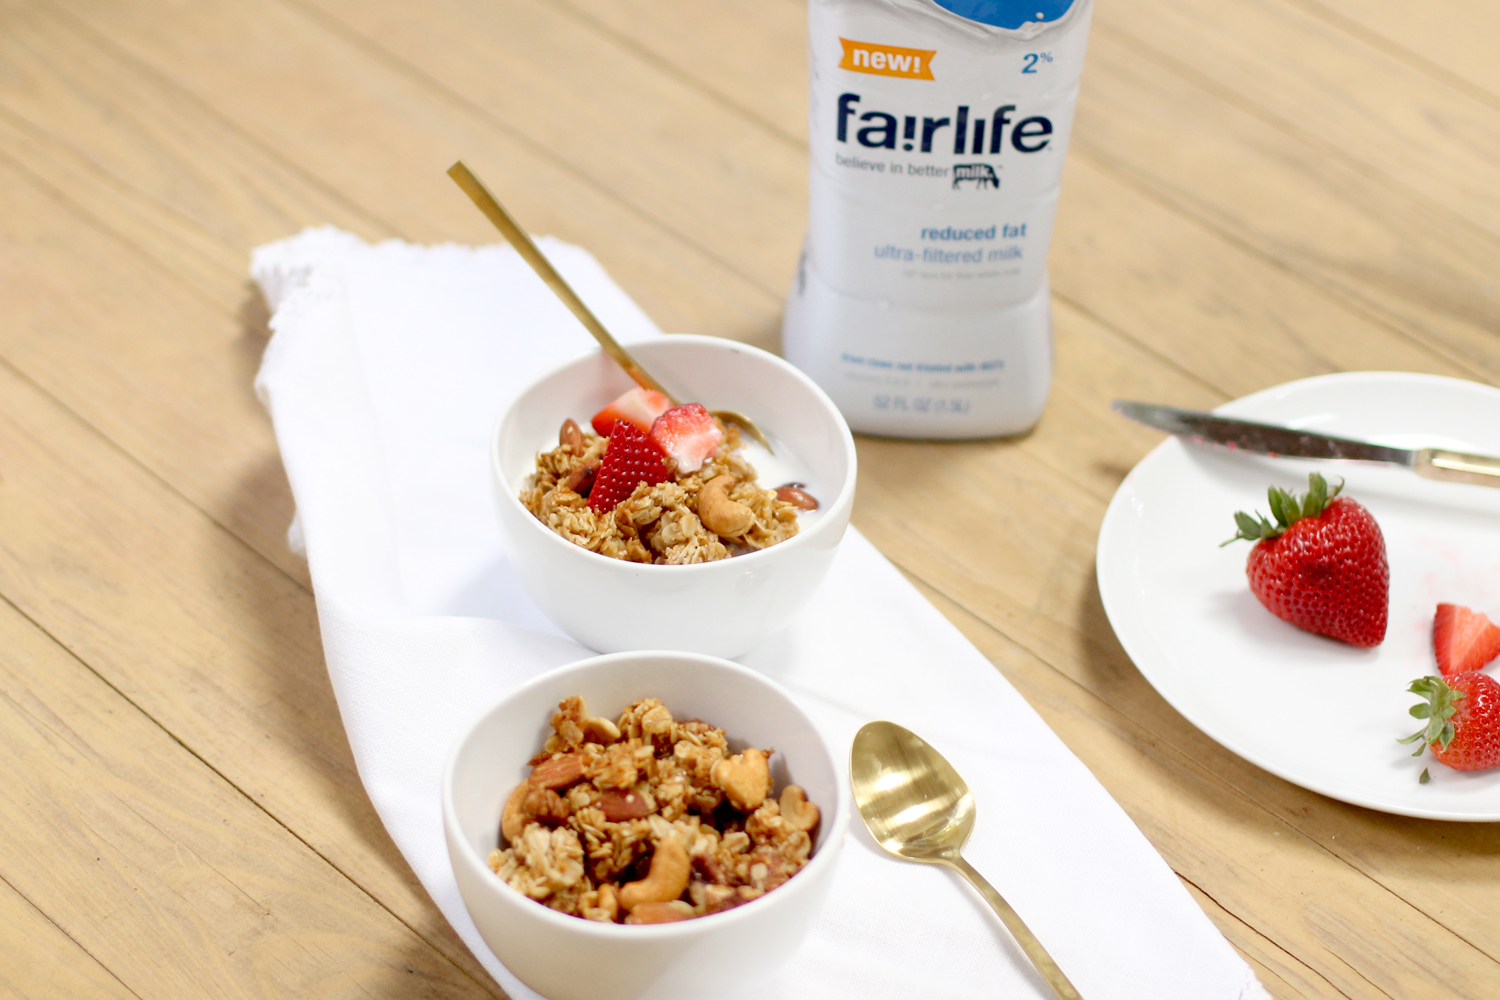 How-to-Make-Nutty-Clumpy-Classic-Granola-Cereal-and-Fairlife-Milk---glitterinc.com